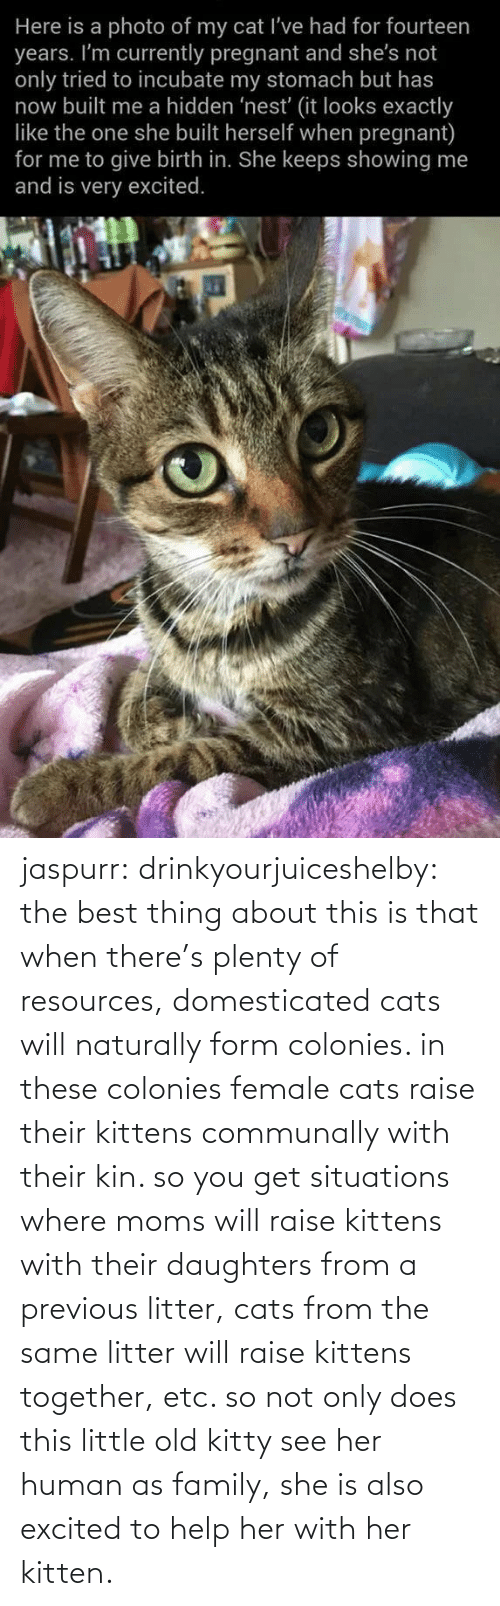 Form: jaspurr:  drinkyourjuiceshelby:    the best thing about this is that when there's plenty of resources, domesticated cats will naturally form colonies. in these colonies female cats raise their kittens communally with their kin. so you get situations where moms will raise kittens with their daughters from a previous litter, cats from the same litter will raise kittens together, etc. so not only does this little old kitty see her human as family, she is also excited to help her with her kitten.